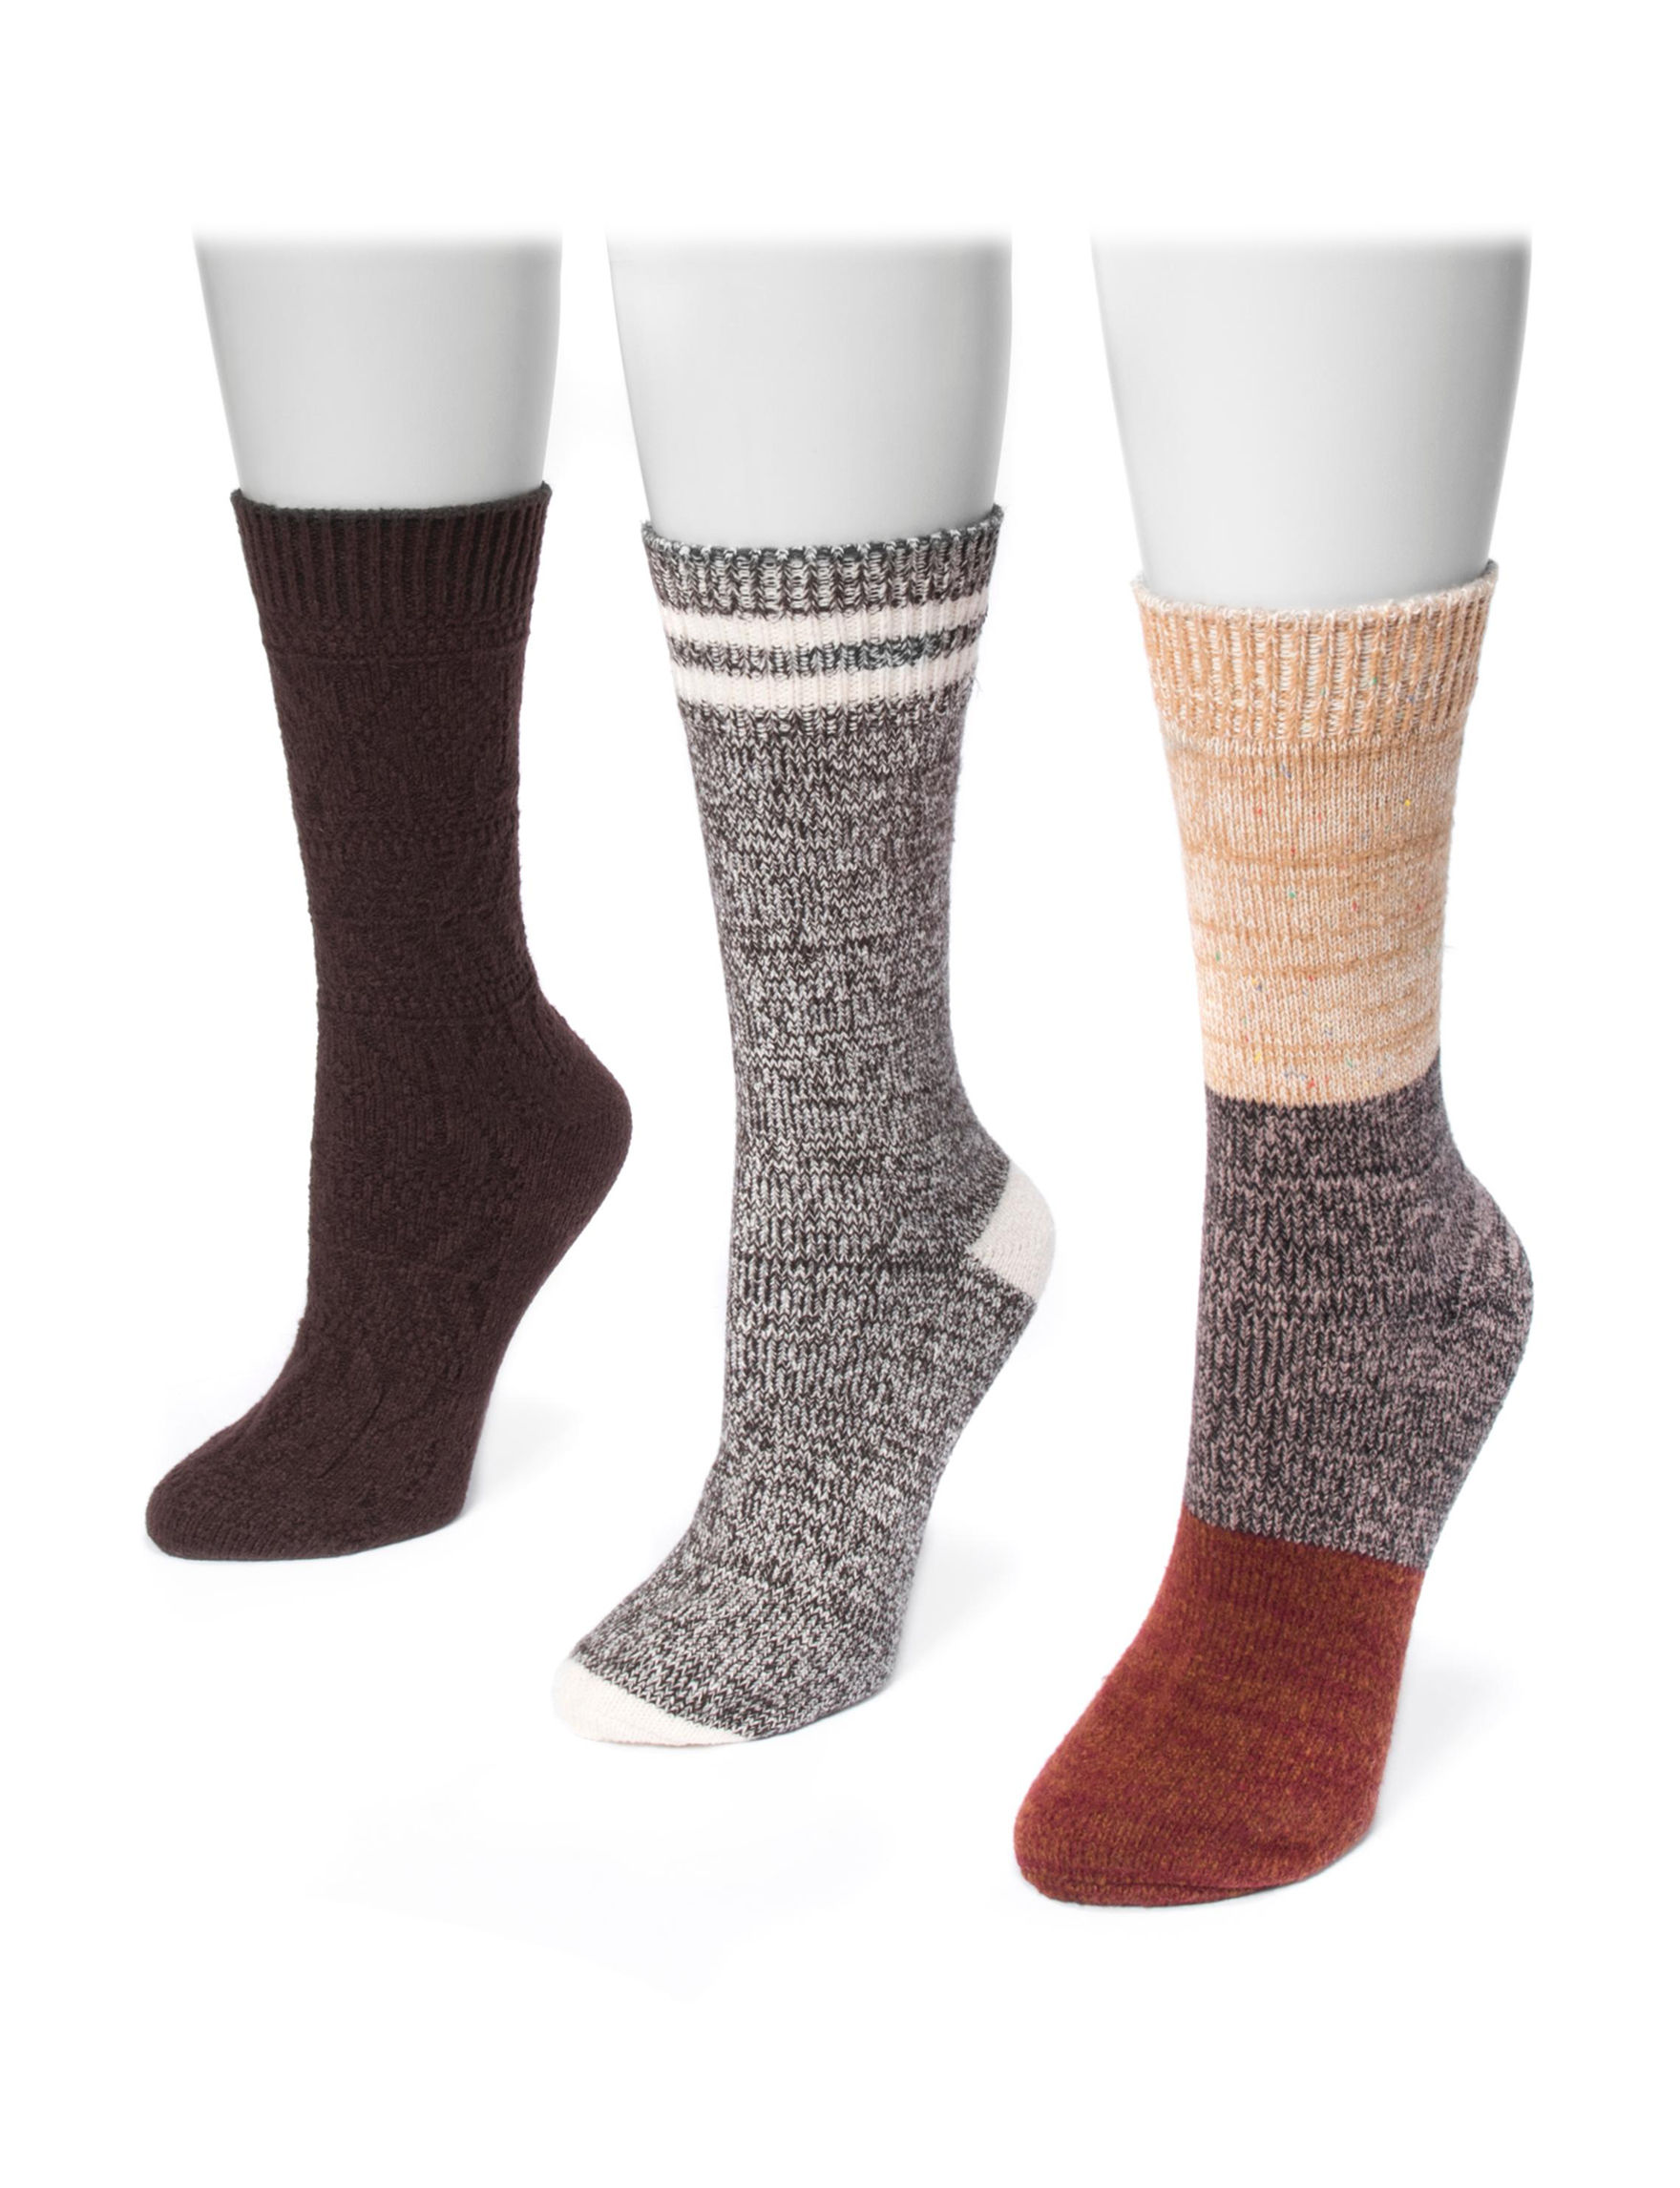 Muk Luks Black Multi Socks